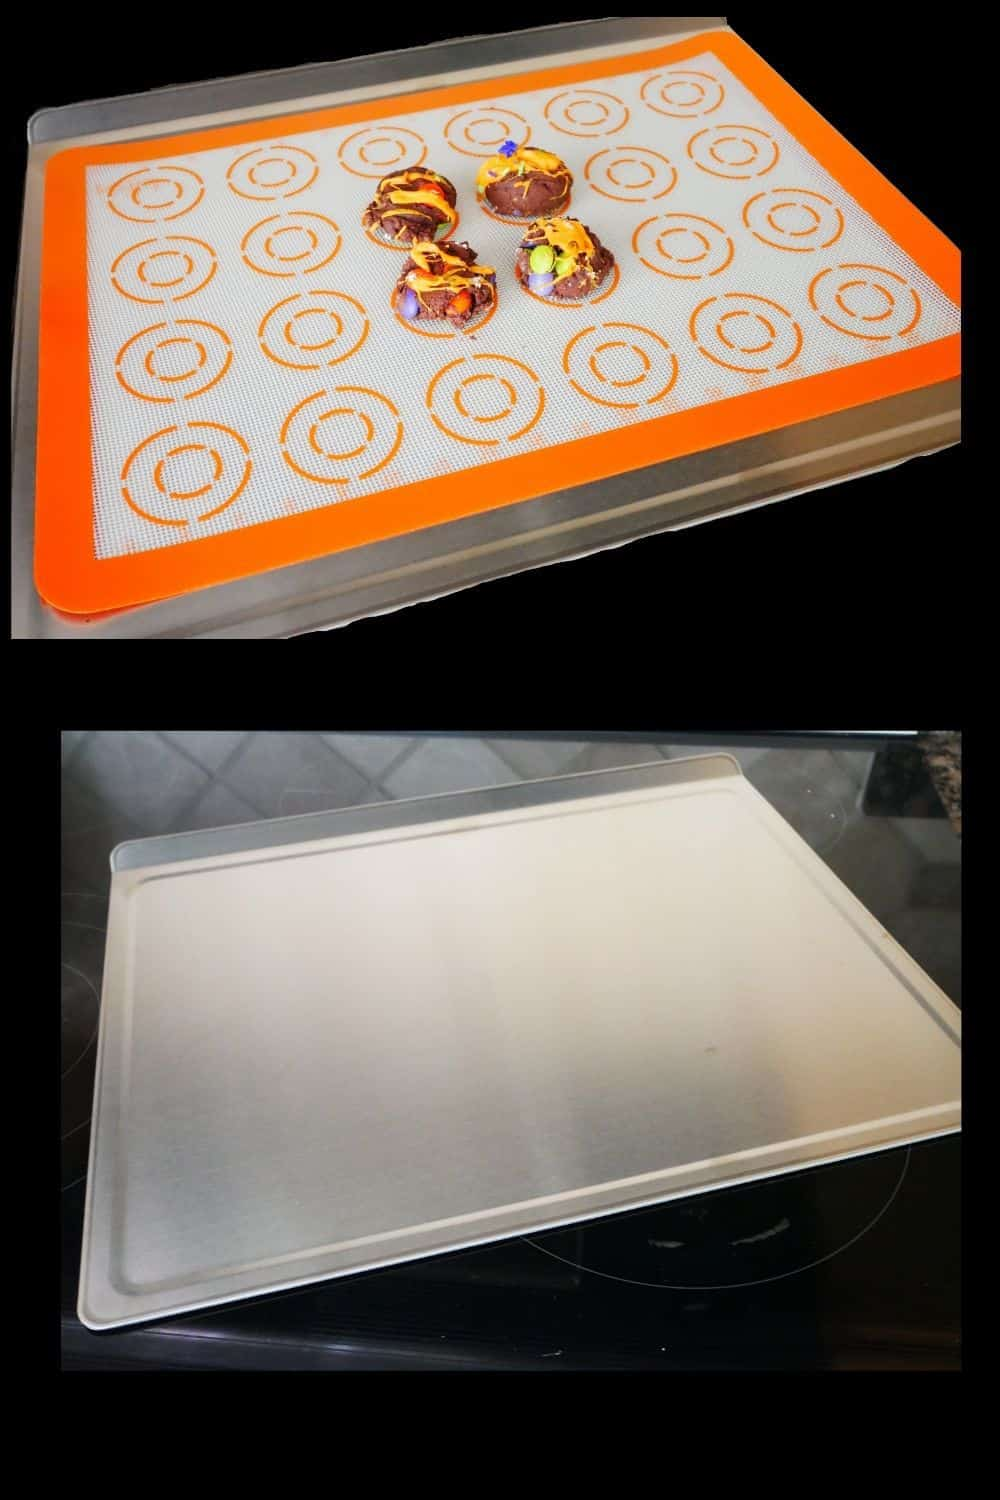 360 Bakeware with cookie on it and silicone cover